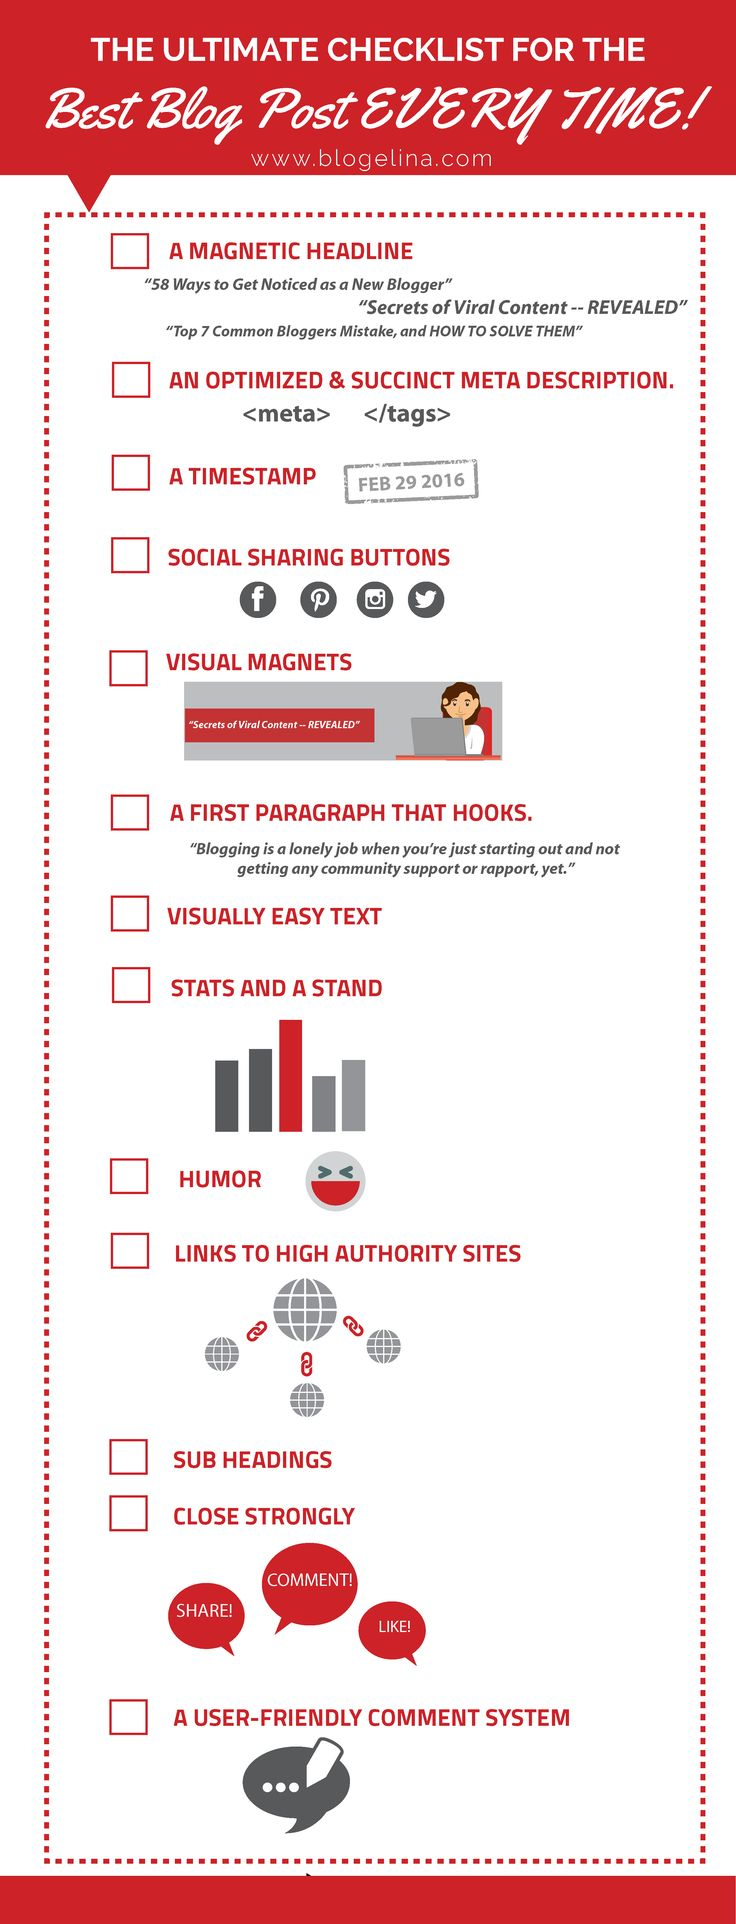 The Ultimate Checklist for the Best Blog Post EVERY TIME!  Great infographic and good blogging reminder!